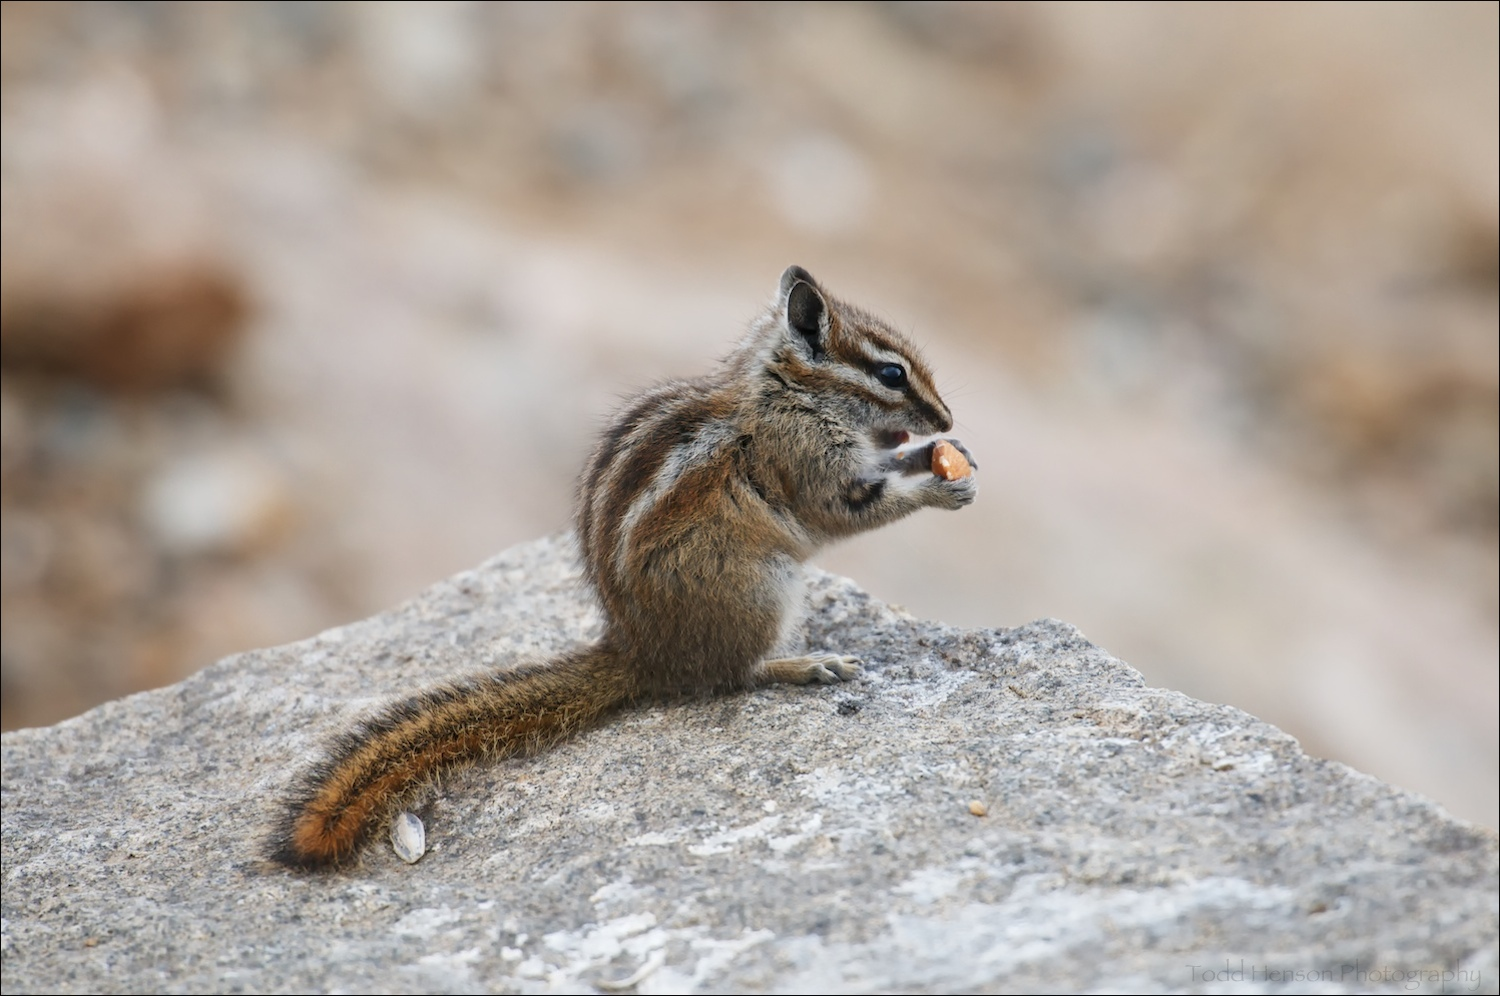 Uinta Chipmunk eating an almond some visitor fed it